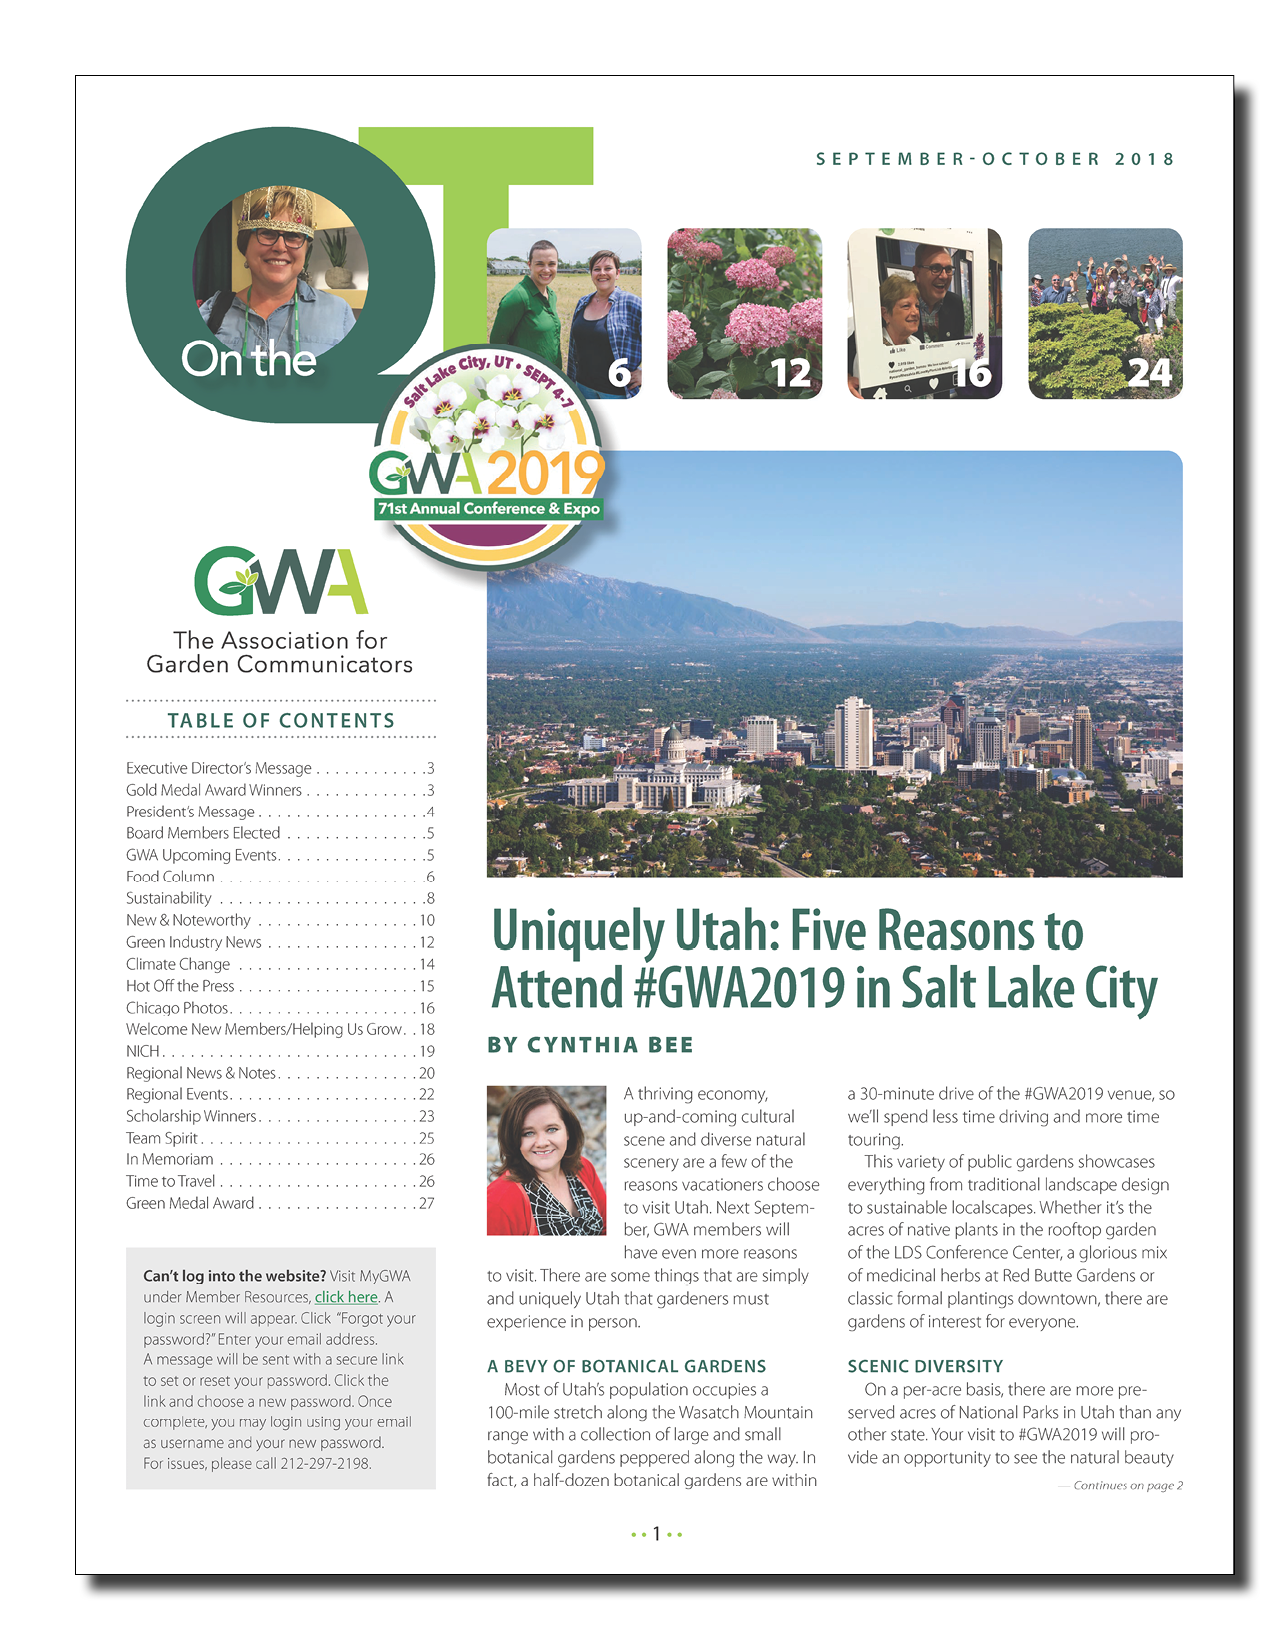 Uniquely Utah Five Reasons To Attend Gwa2019 In Salt Lake City